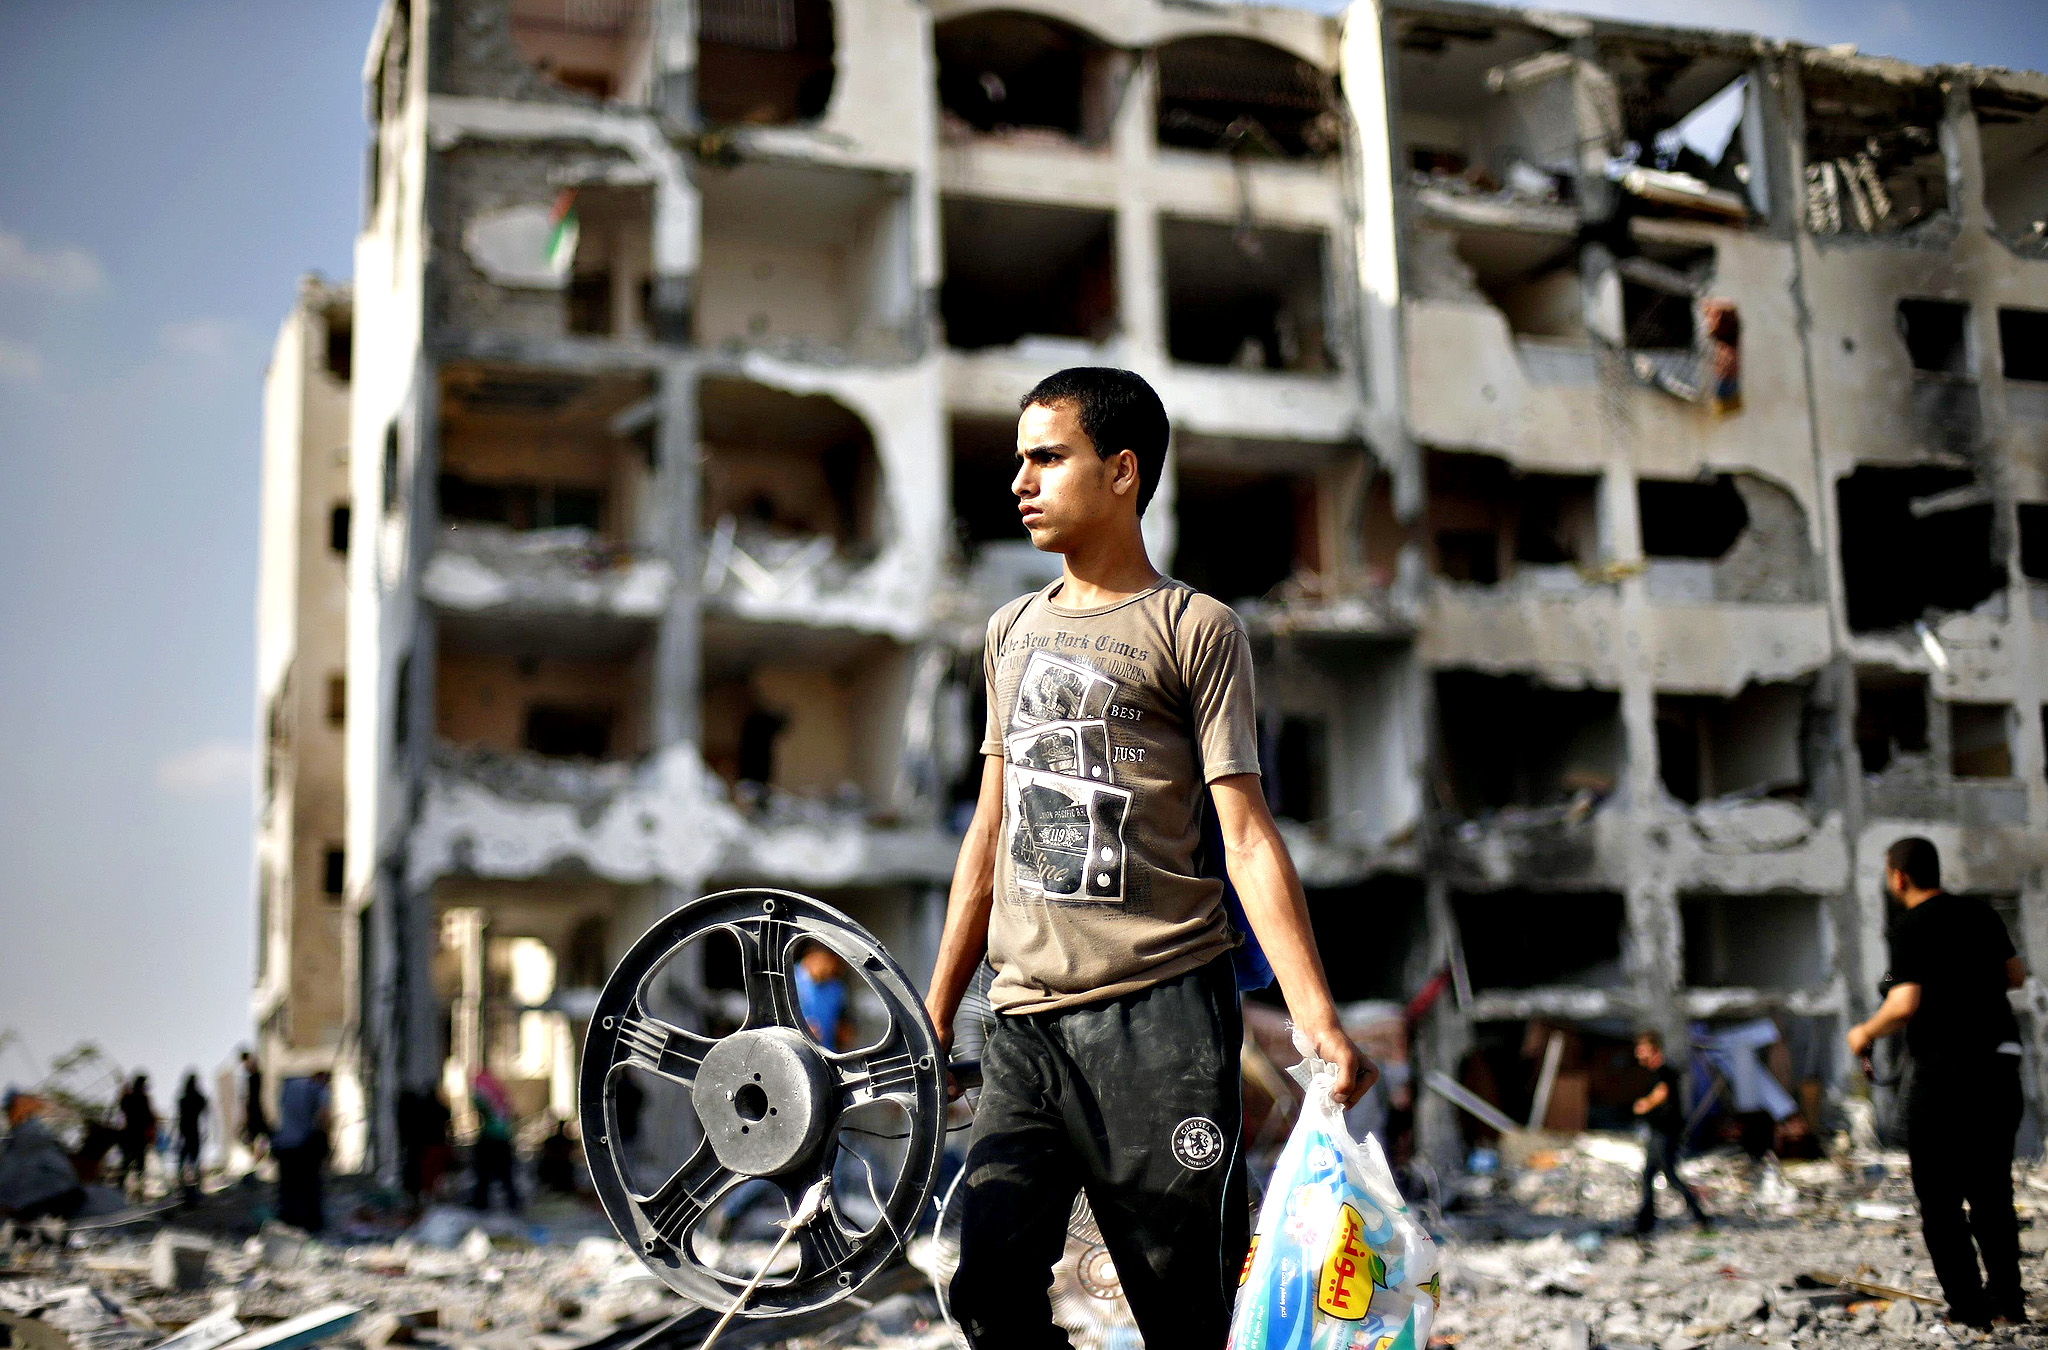 A Palestinian carries his belonging as he walks past a badly damaged residential building after returning to Beit Lahiya town in the northern Gaza Strip...A Palestinian carries his belonging as he walks past a badly damaged residential building after returning to Beit Lahiya town, which witnesses said was heavily hit by Israeli shelling and air strikes during the Israeli offensive, in the northern Gaza Strip August 5, 2014. Israel pulled its ground forces out of the Gaza Strip on Tuesday and began a 72-hour truce with Hamas mediated by Egypt as a first step towards negotiations on a more enduring end to the month-old war. Gaza officials say the war has killed 1,834 Palestinians, most of them civilians. Israel says 64 of its soldiers and three civilians have been killed since fighting began on July 8, after a surge in Palestinian rocket launches.